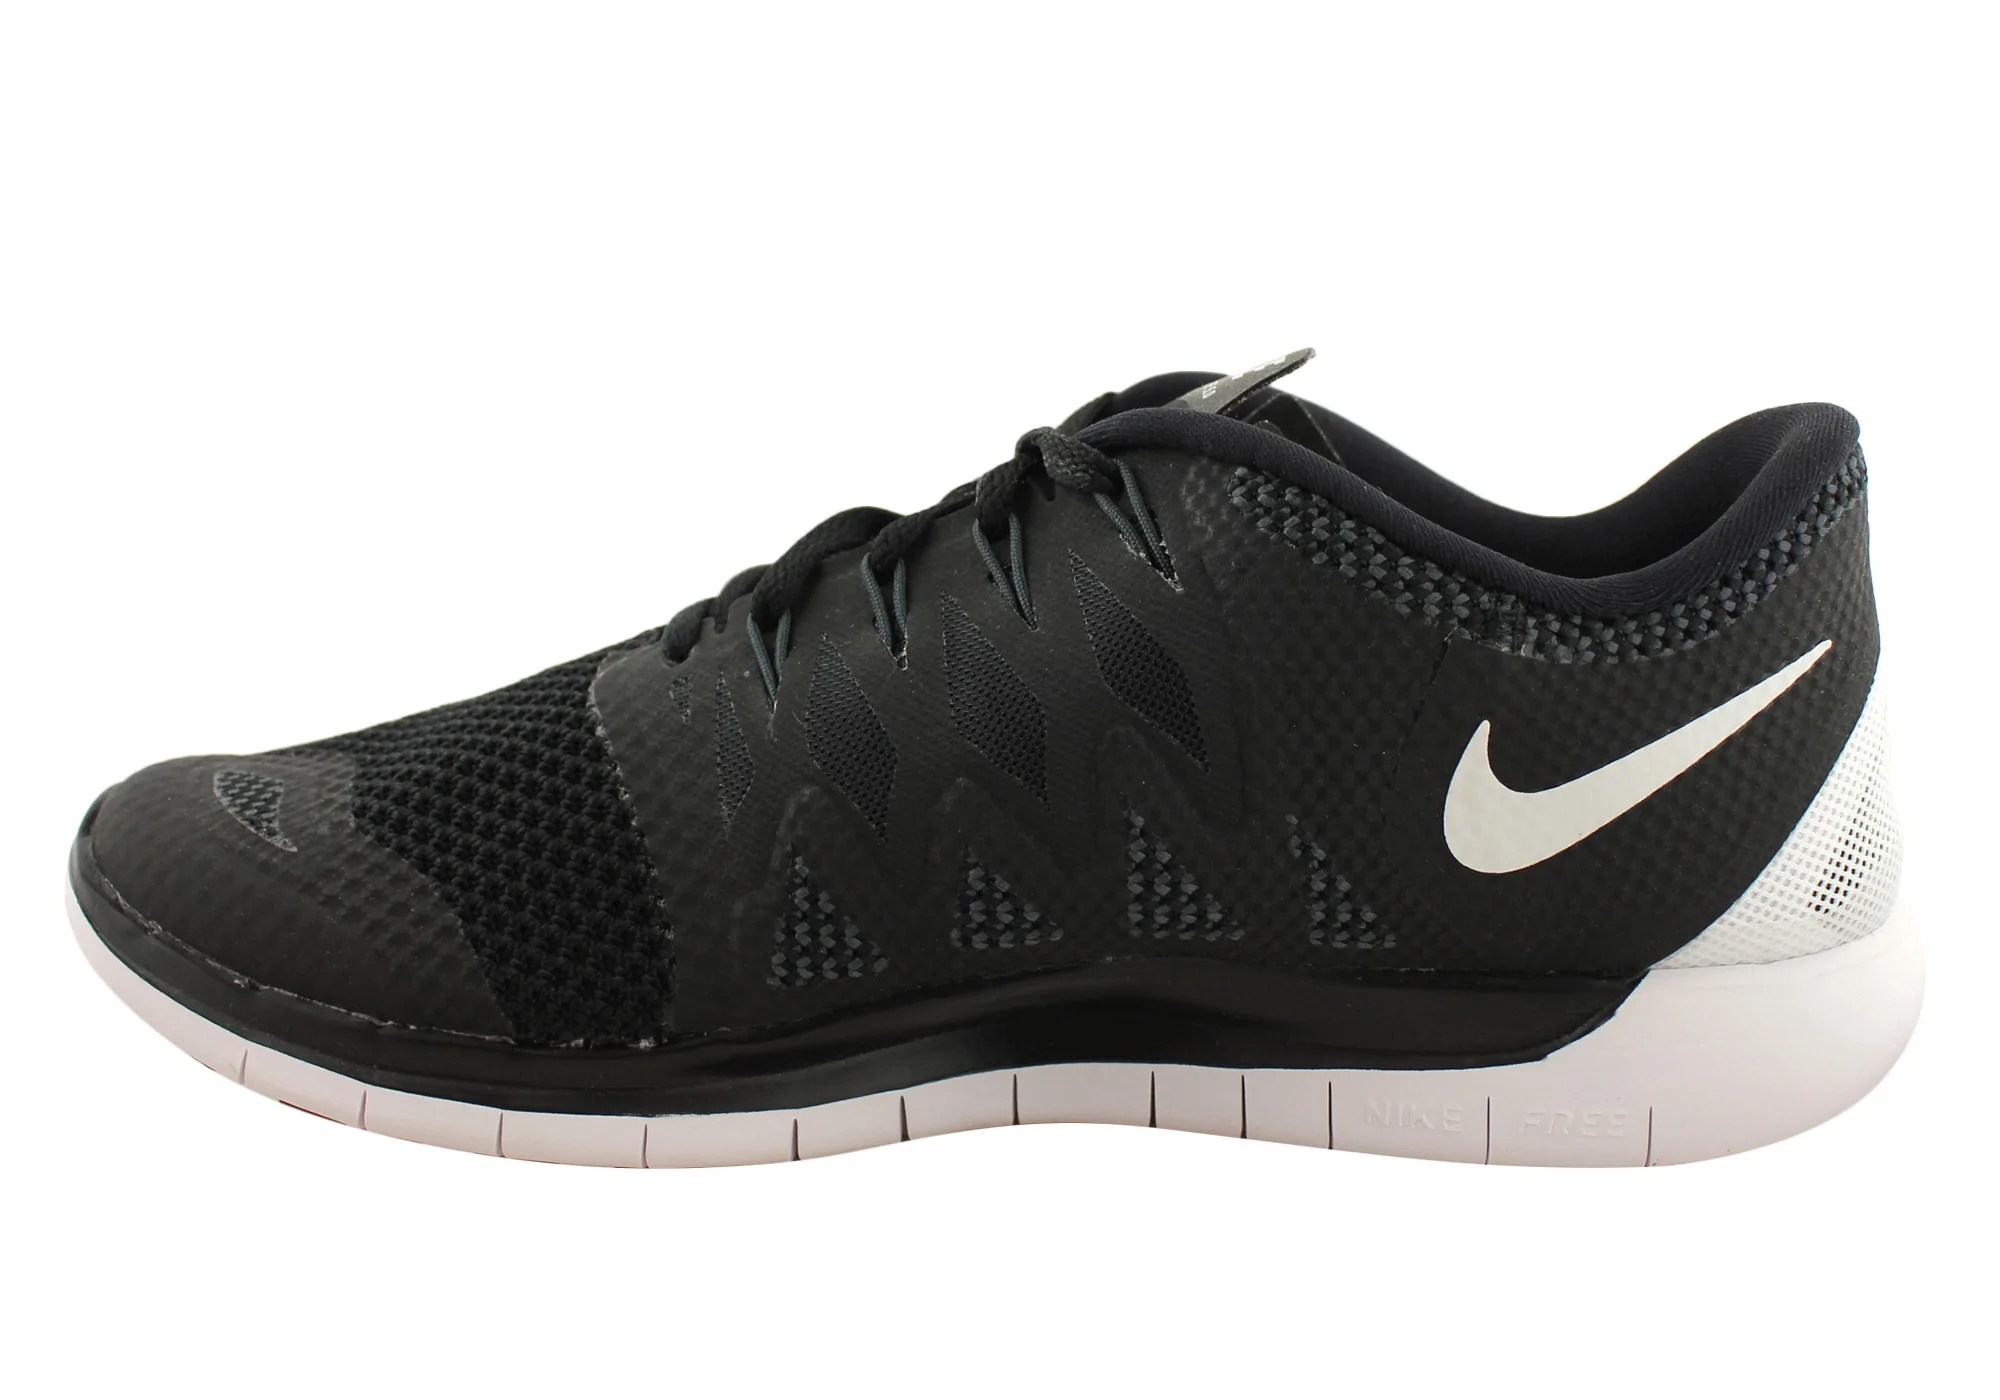 Nike Barefoot Running Shoes